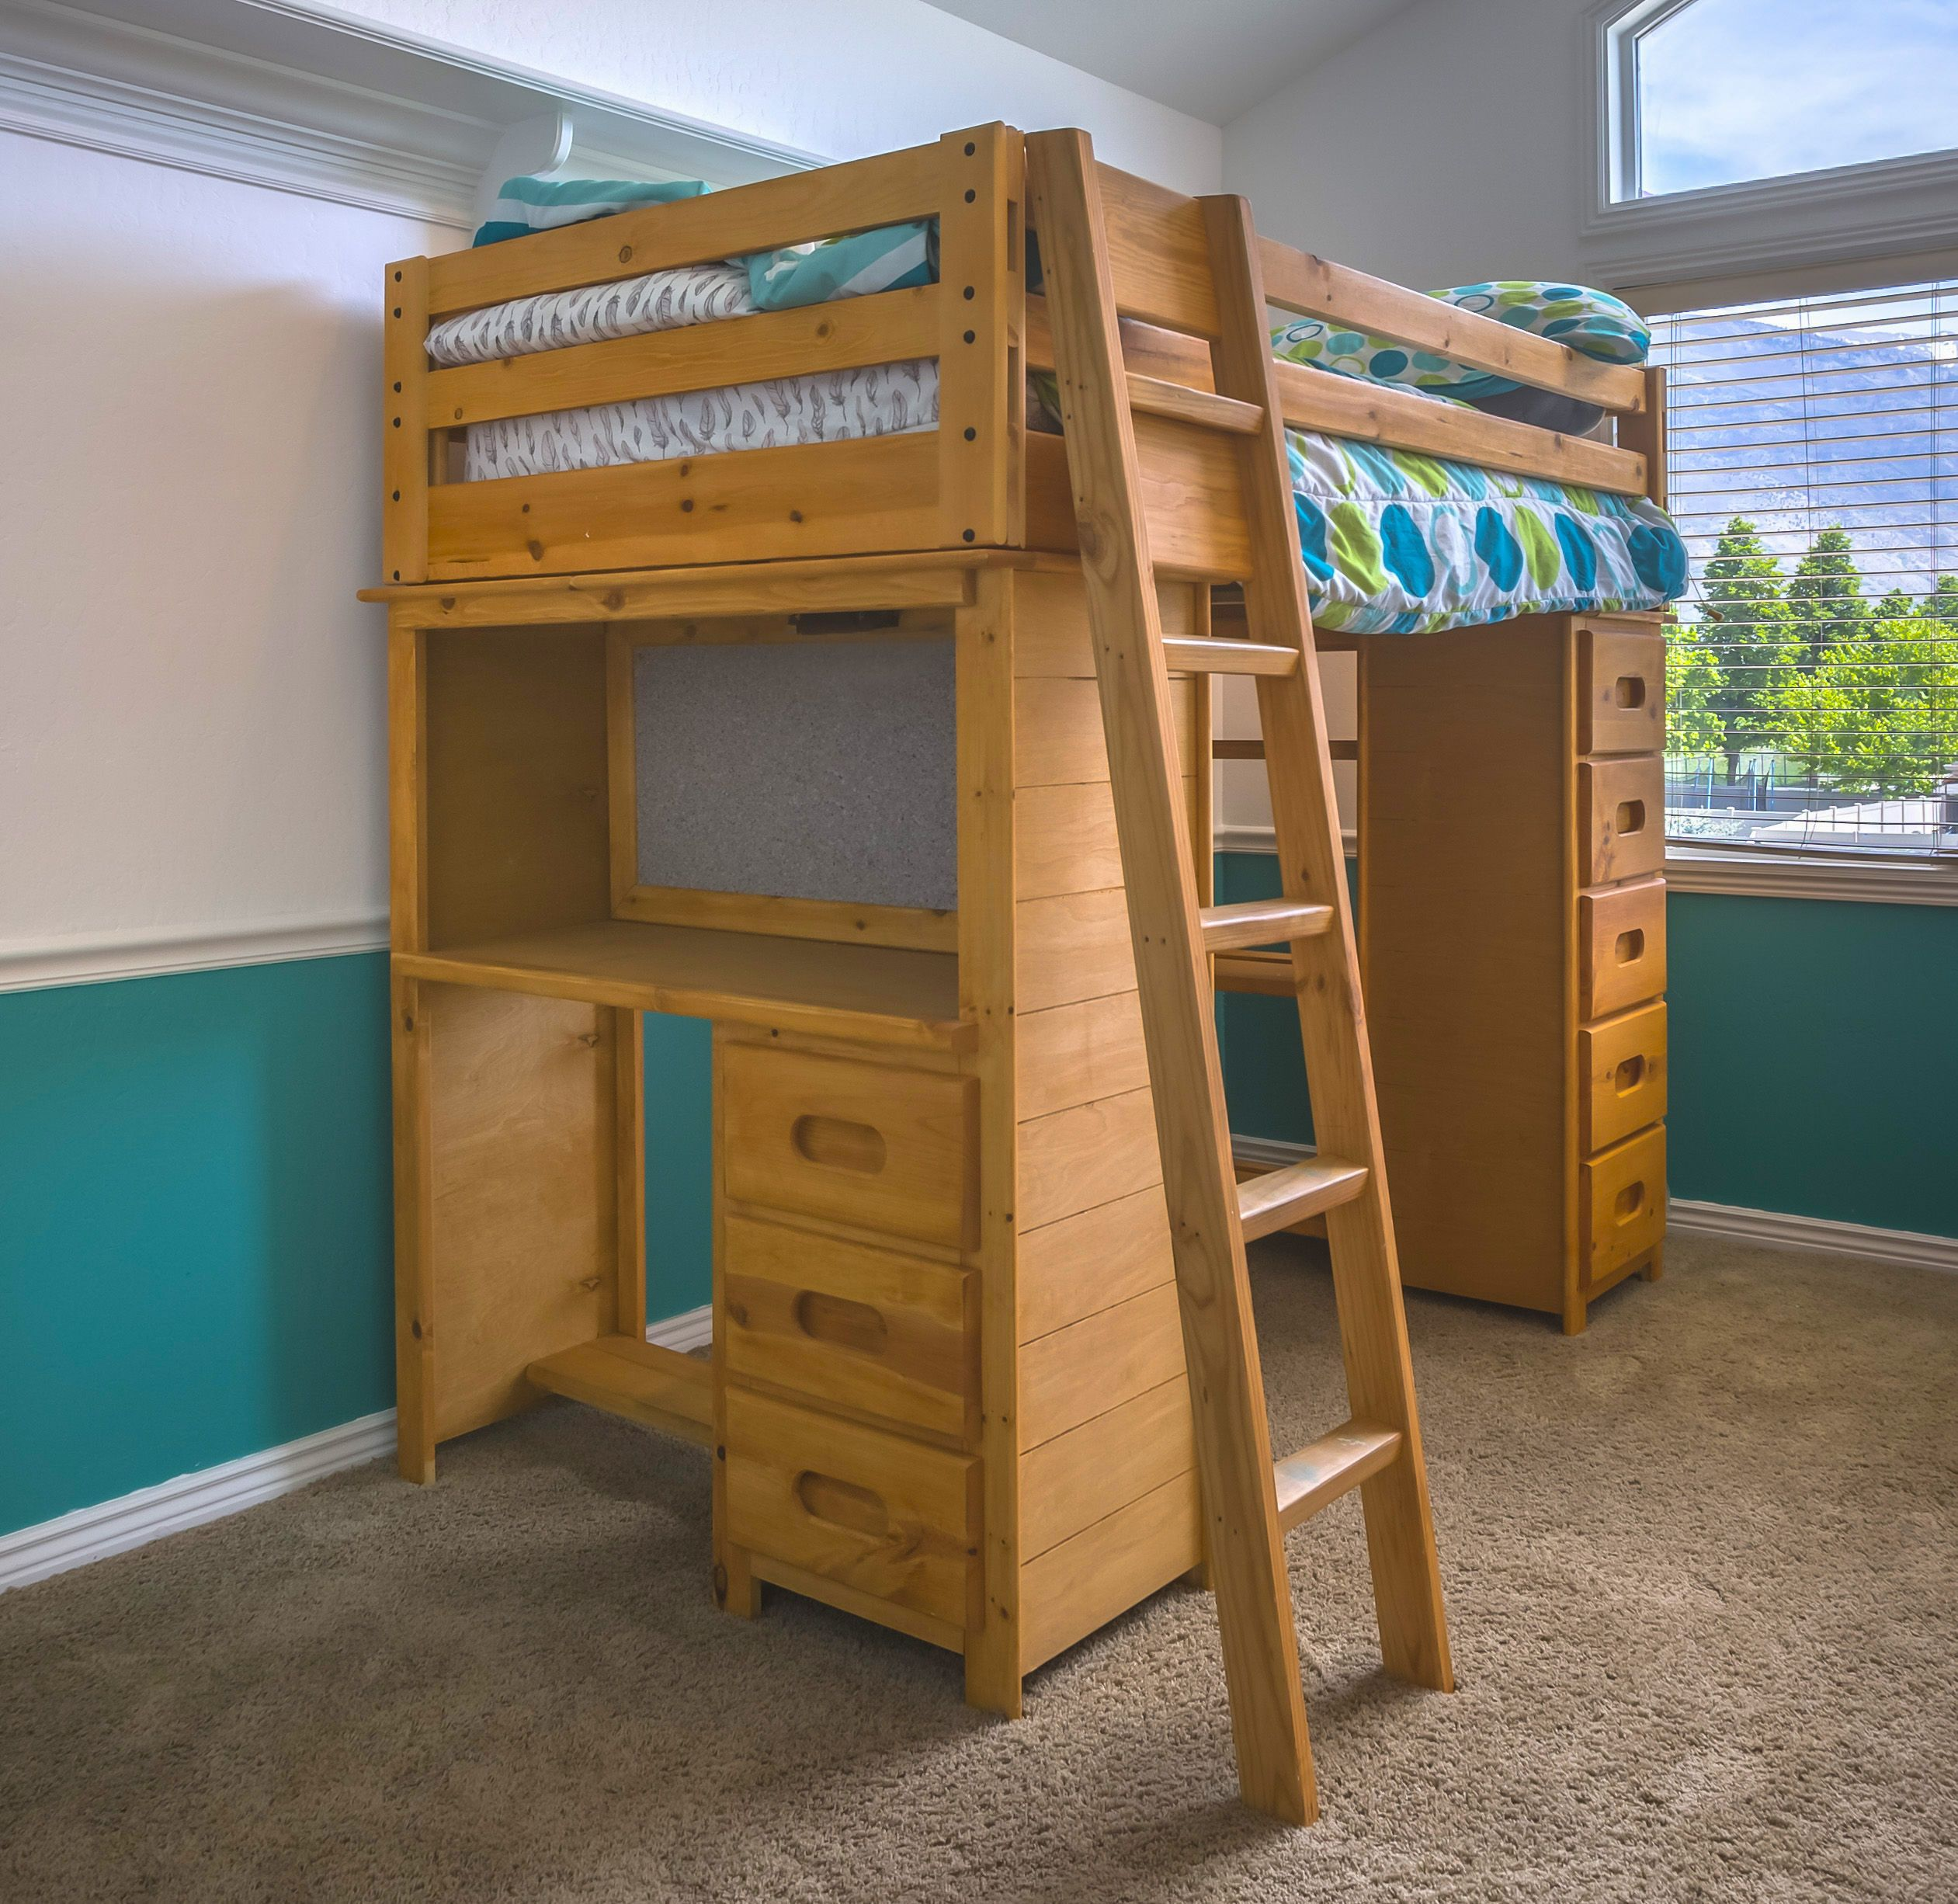 Keeping Bunk Beds Safe for Your Kids Bed, Bunk beds